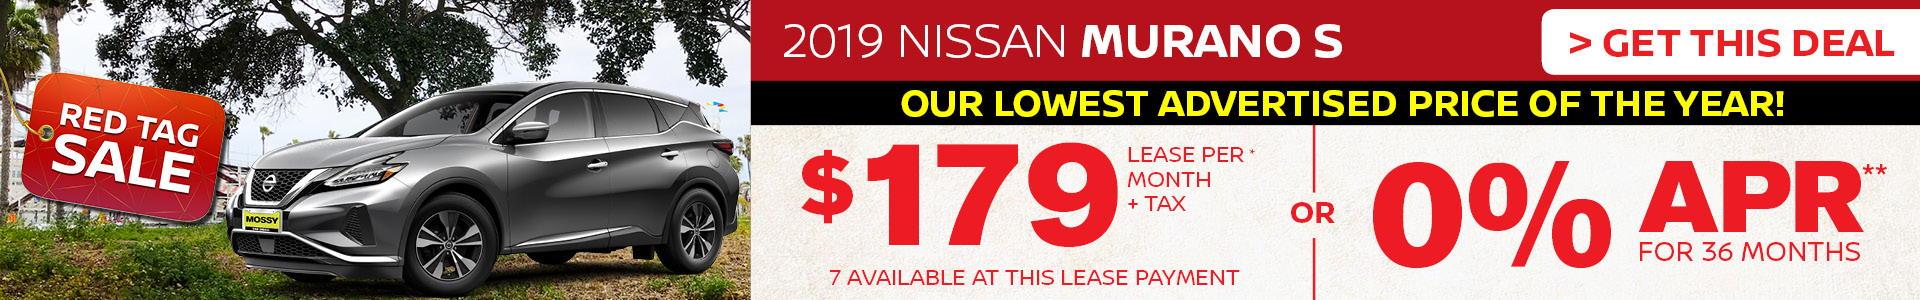 Mossy Nissan - Nissan Murano $179 Lease